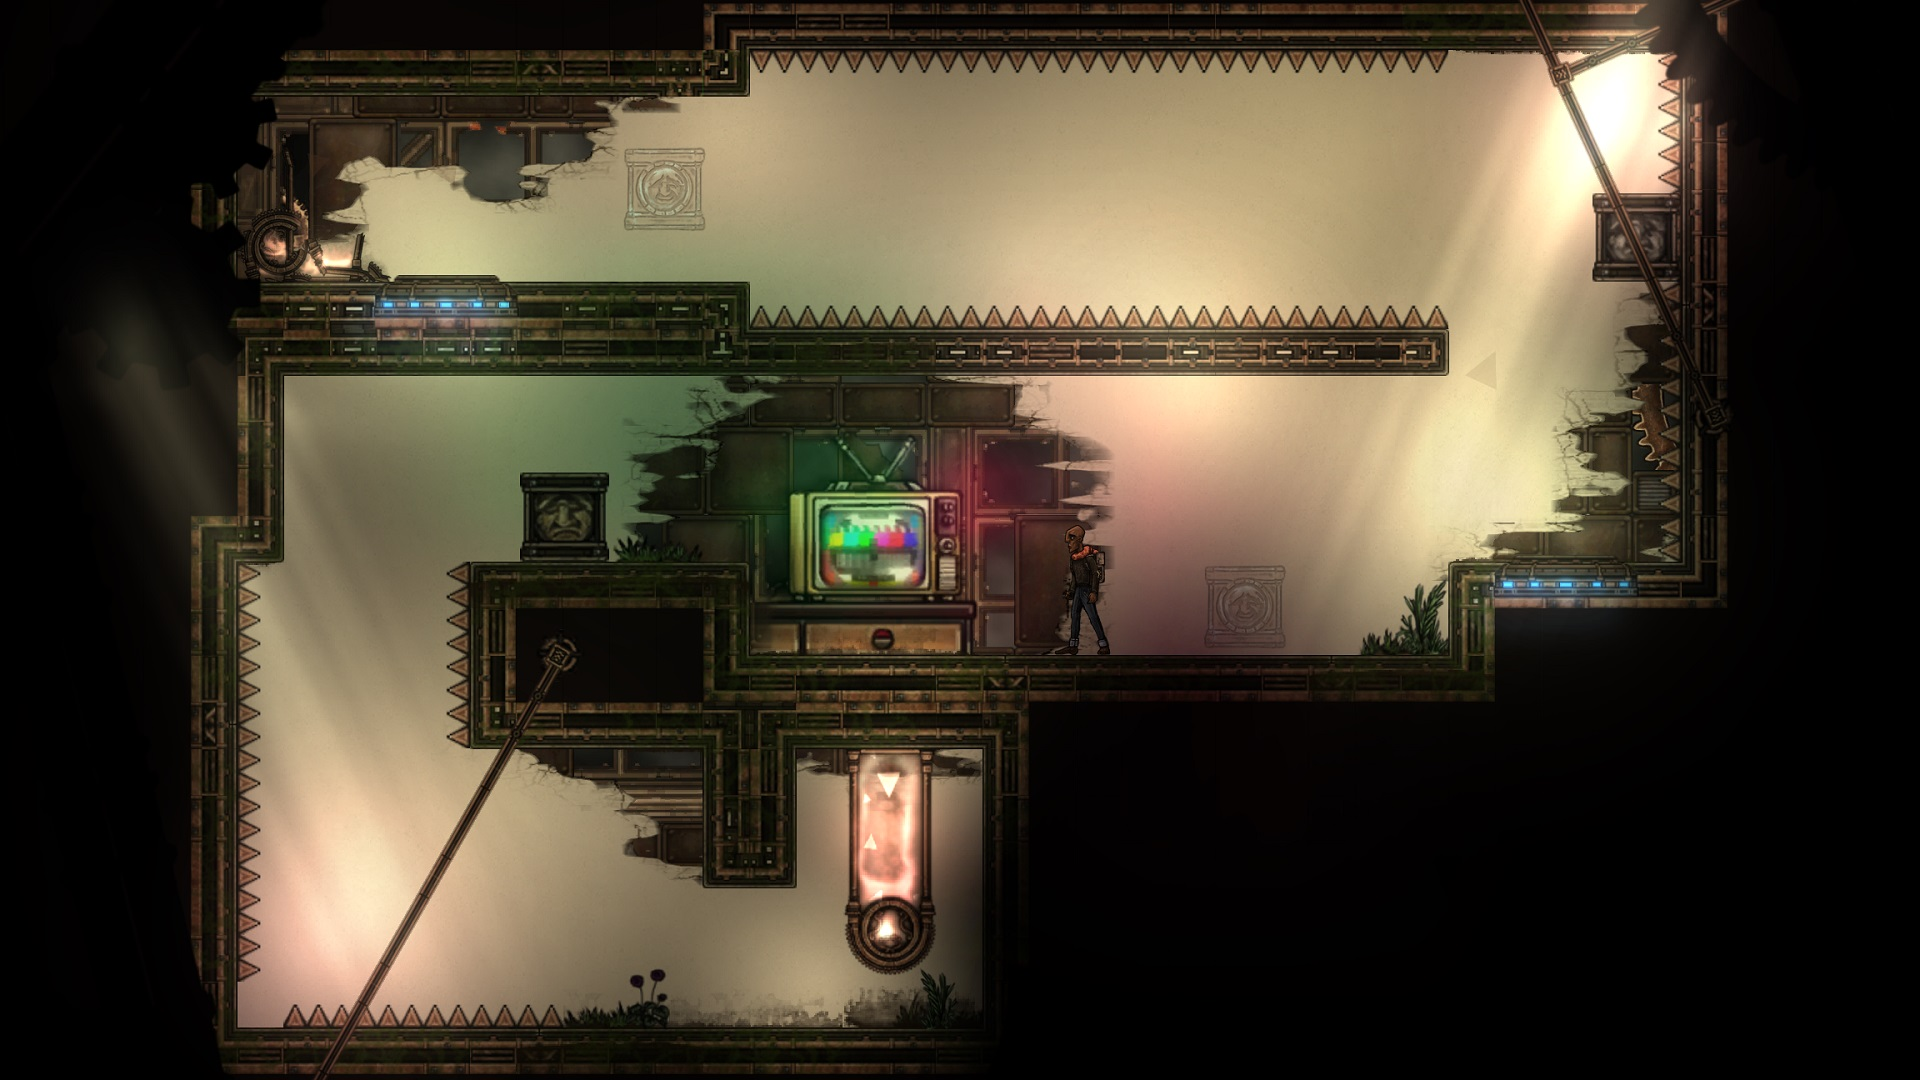 Bronze Award-winning platformer In Between drops to its lowest price yet